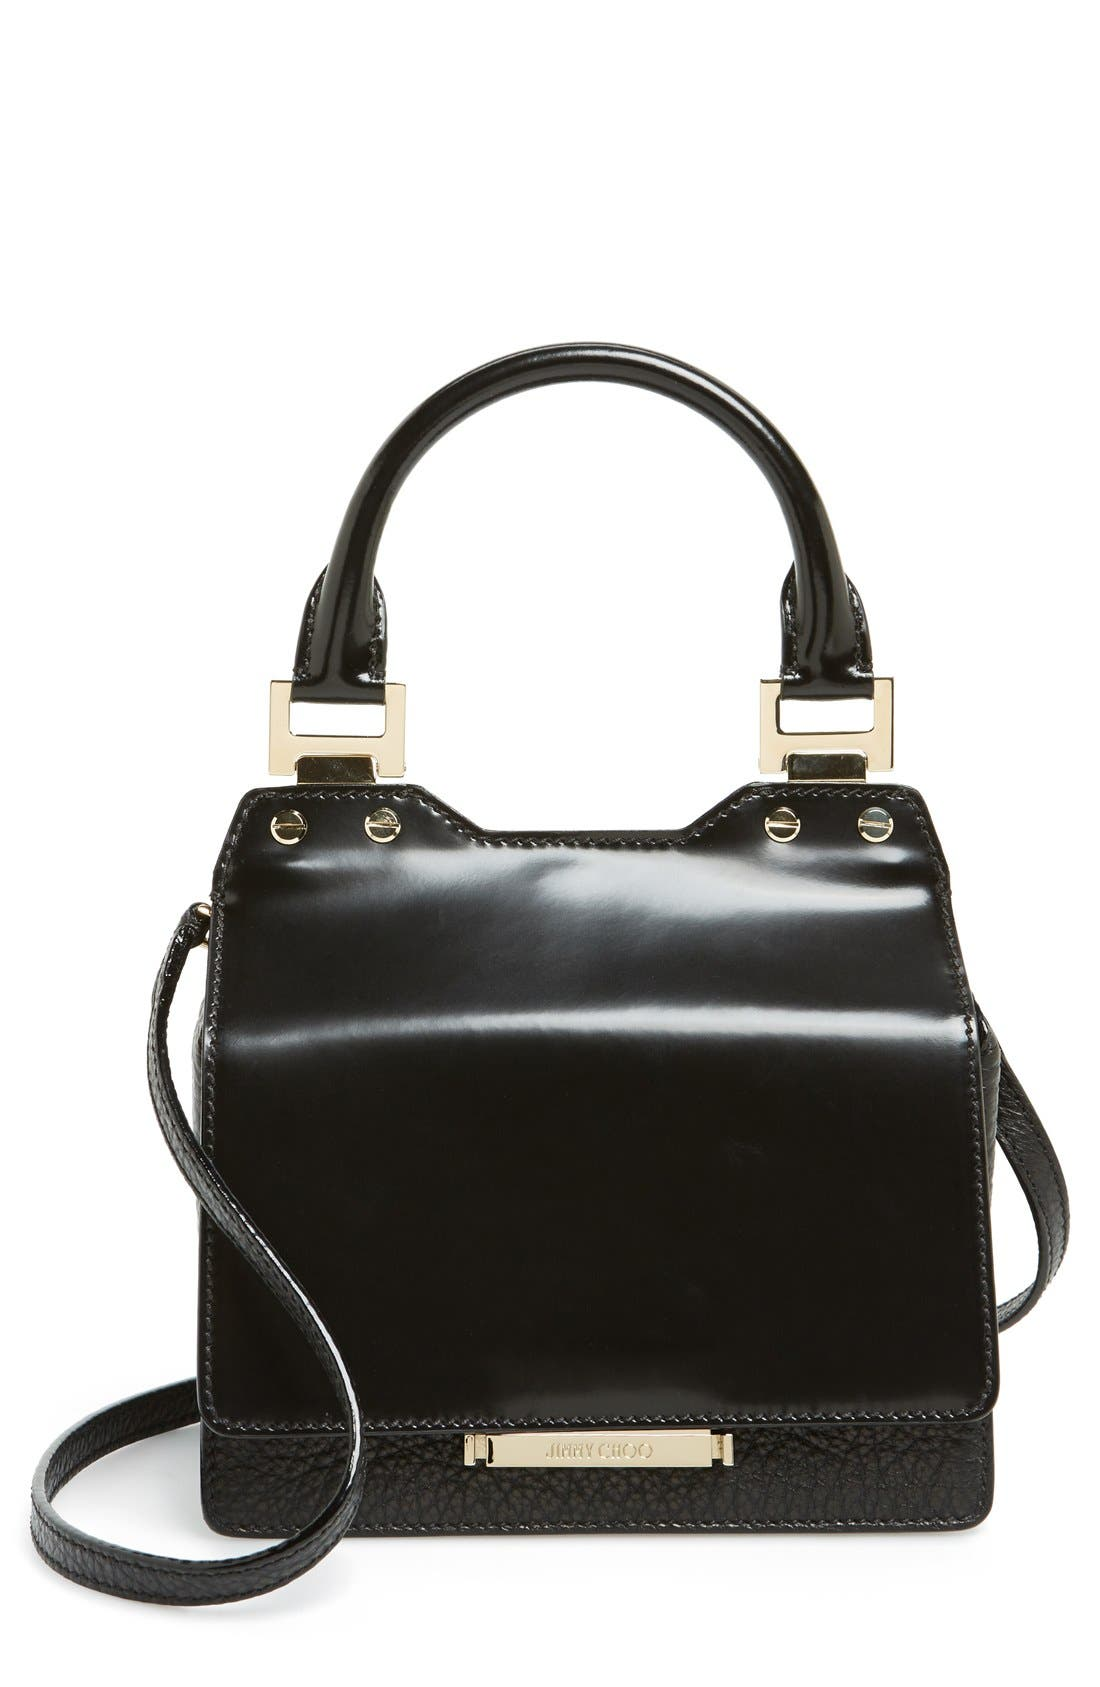 Alternate Image 1 Selected - Jimmy Choo 'Amie' Top Handle Leather Satchel